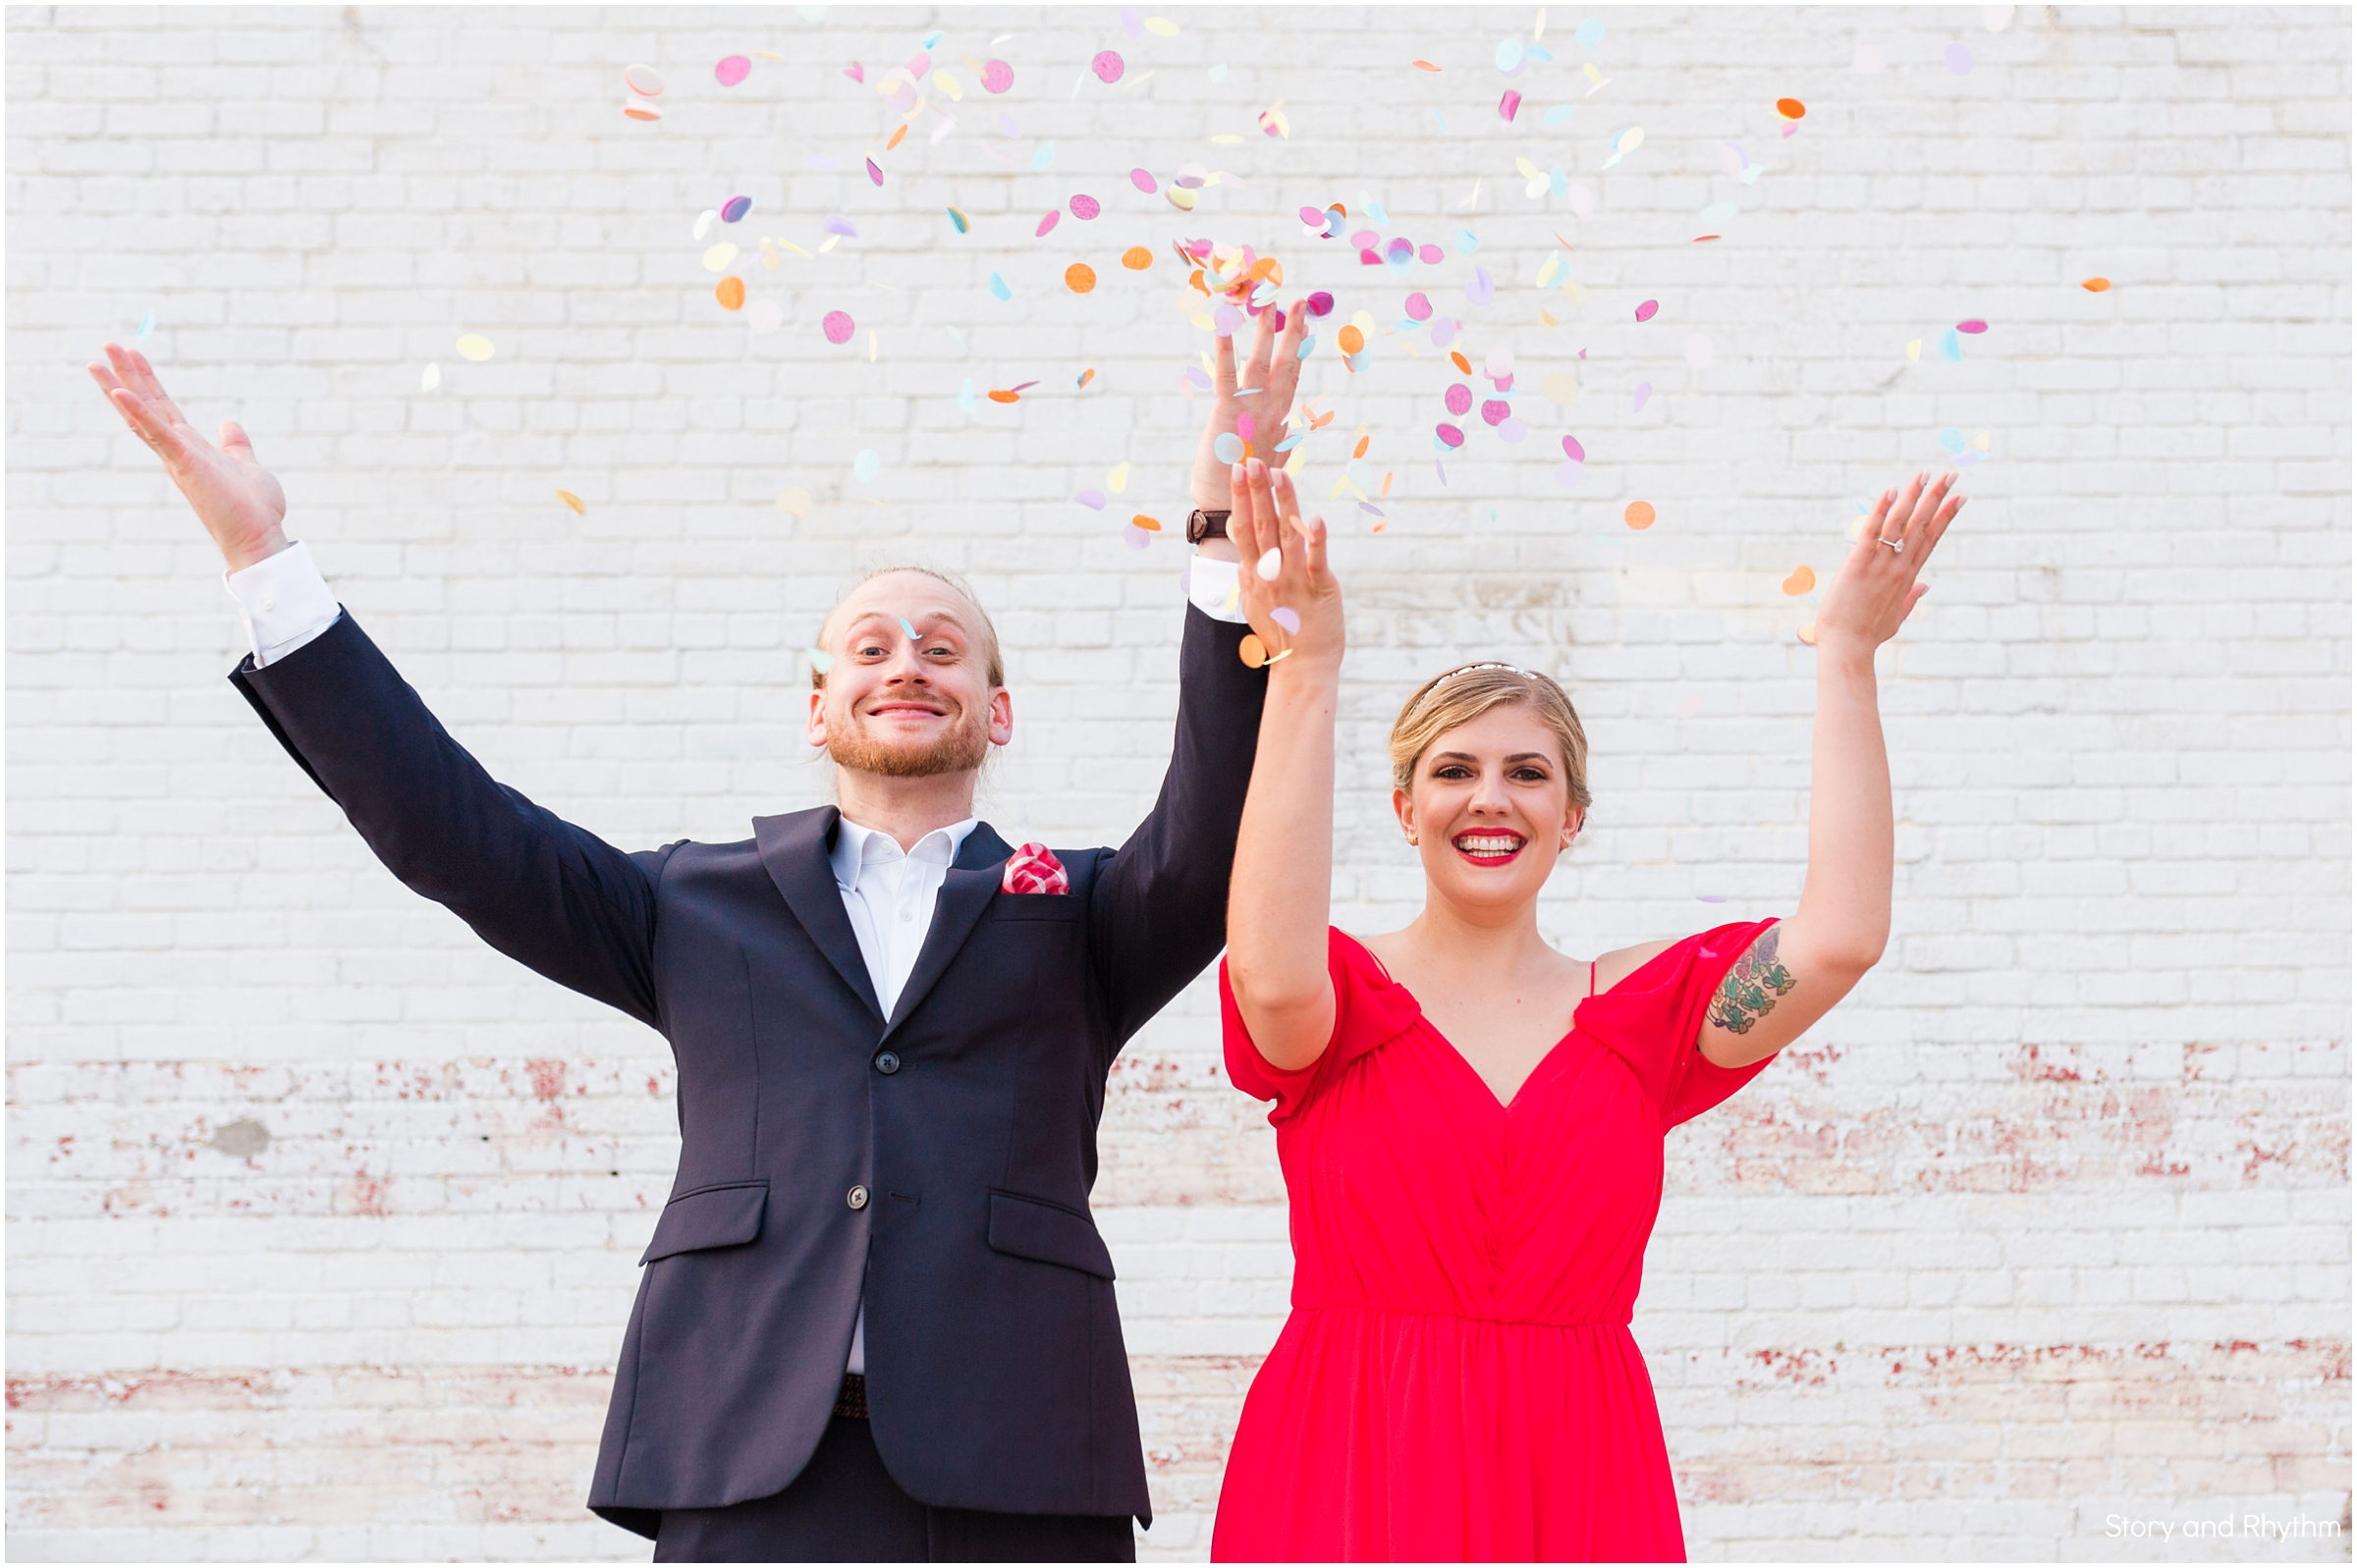 Fun engagement photo ideas with confetti